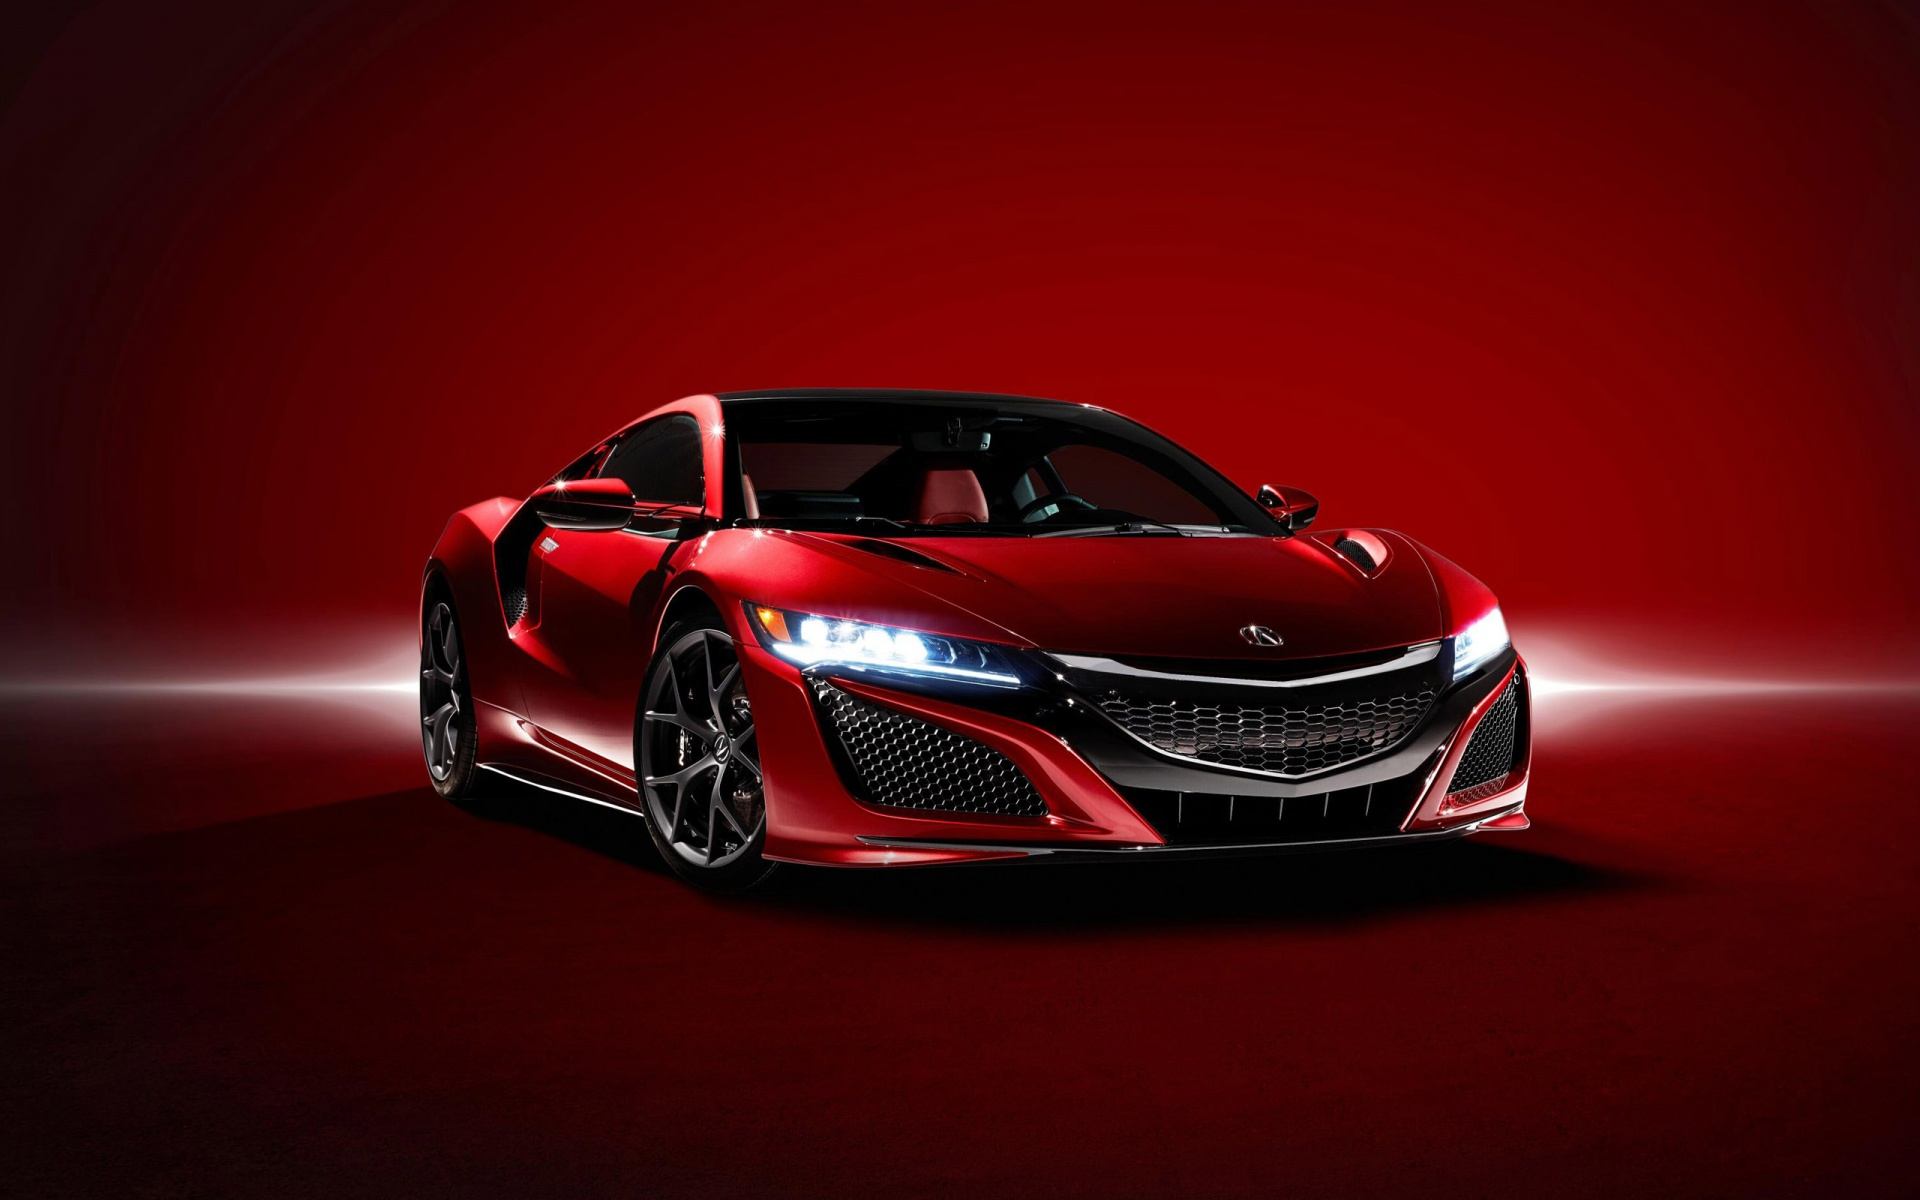 2016 Acura NSX Supercar Wallpapers in jpg format for free